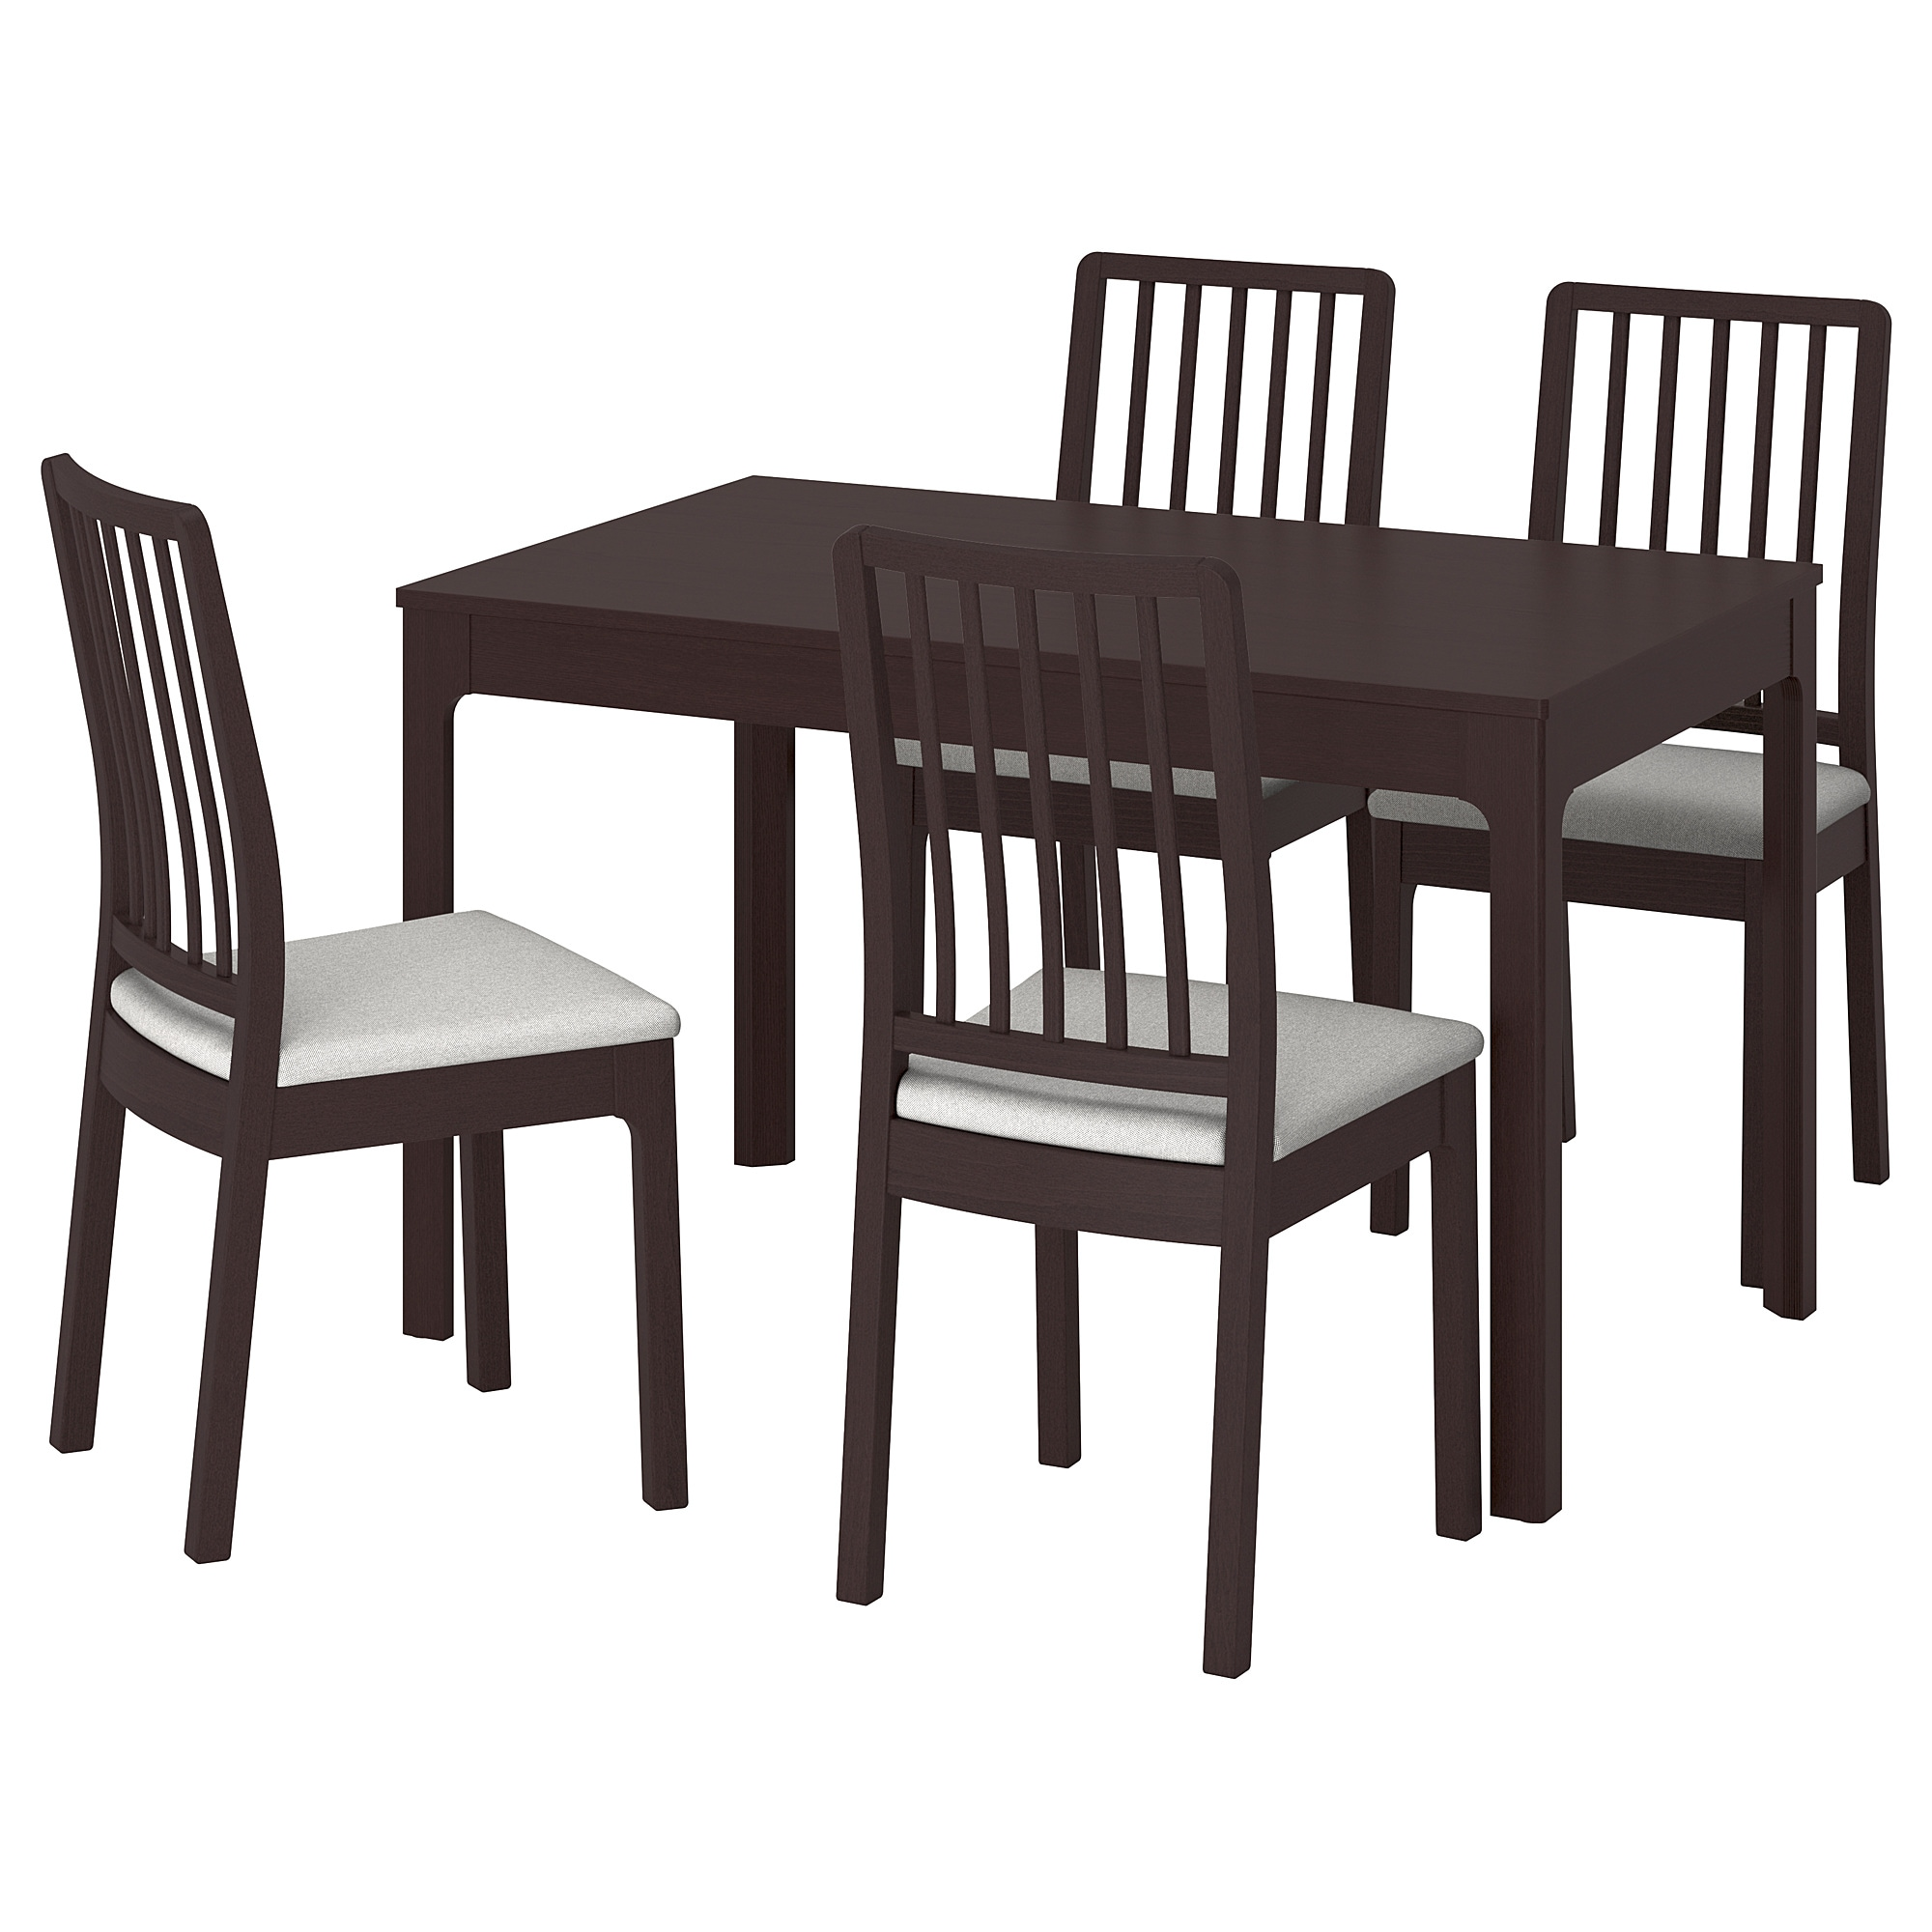 EKEDALEN / EKEDALEN Table And 4 Chairs, Dark Brown, Orrsta Light Gray Table  Min